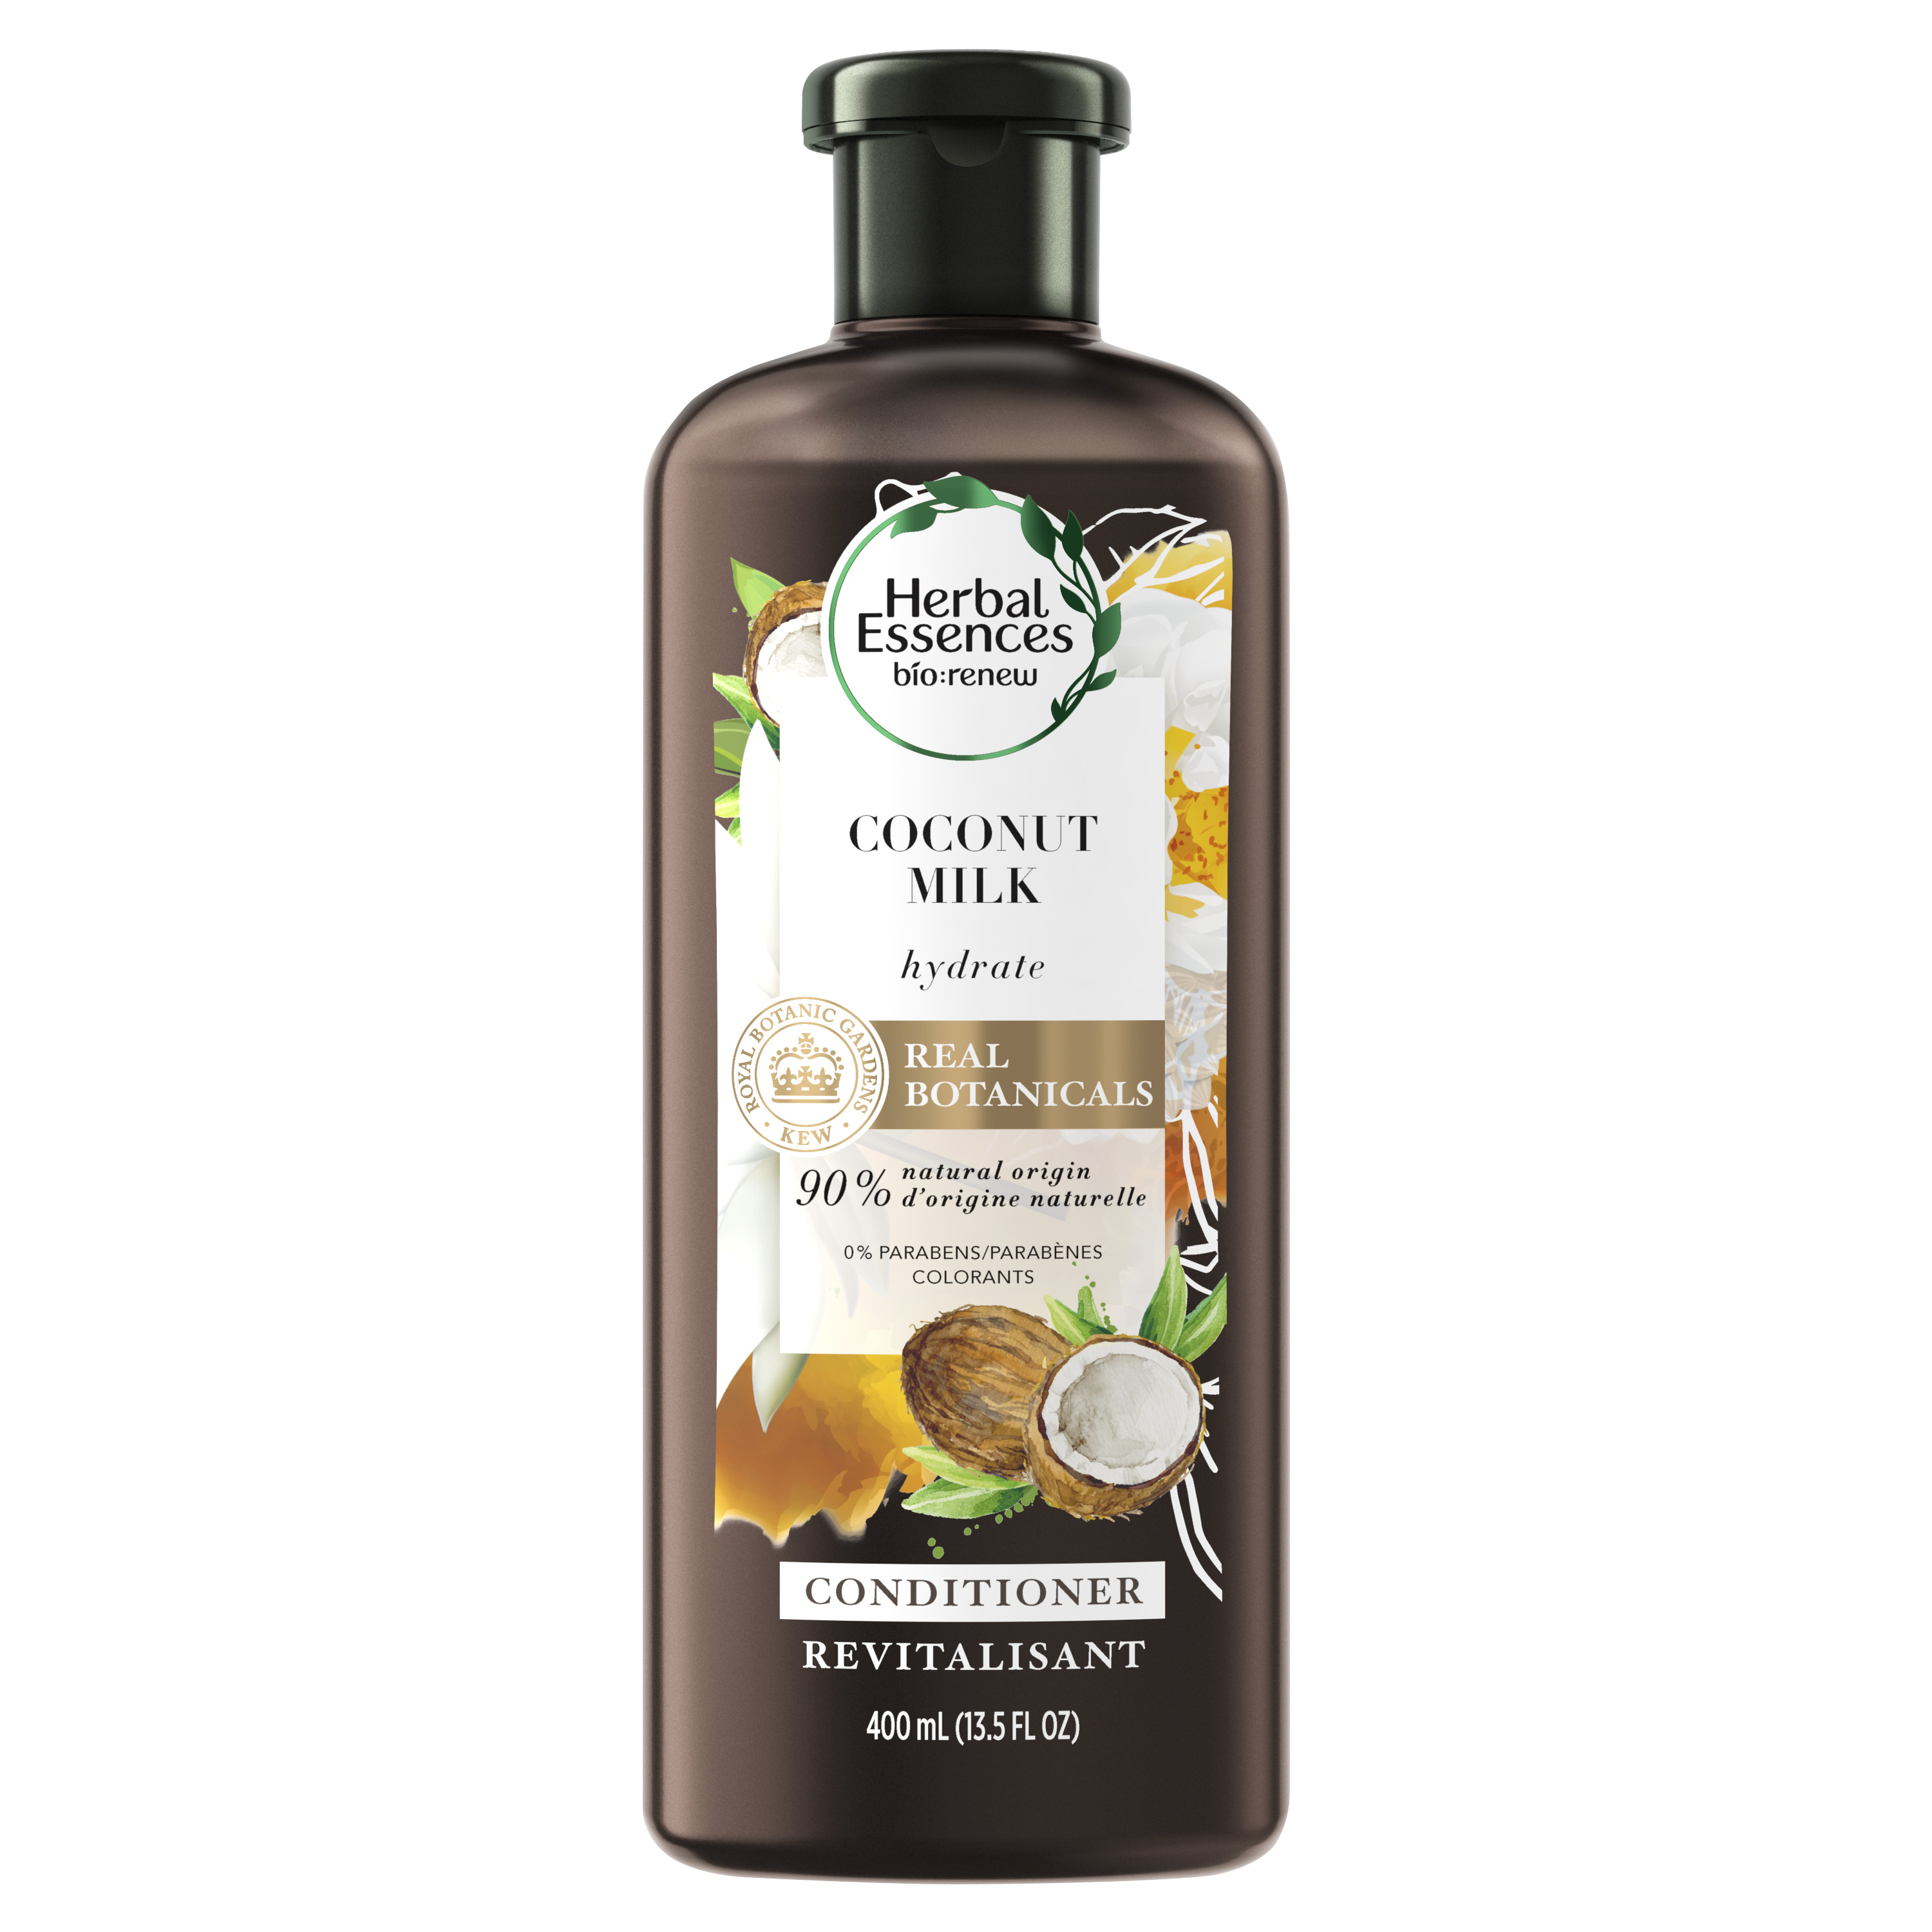 Herbal Essences bio:renew Coconut Milk Hydrating Conditioner, 13.5 fl oz